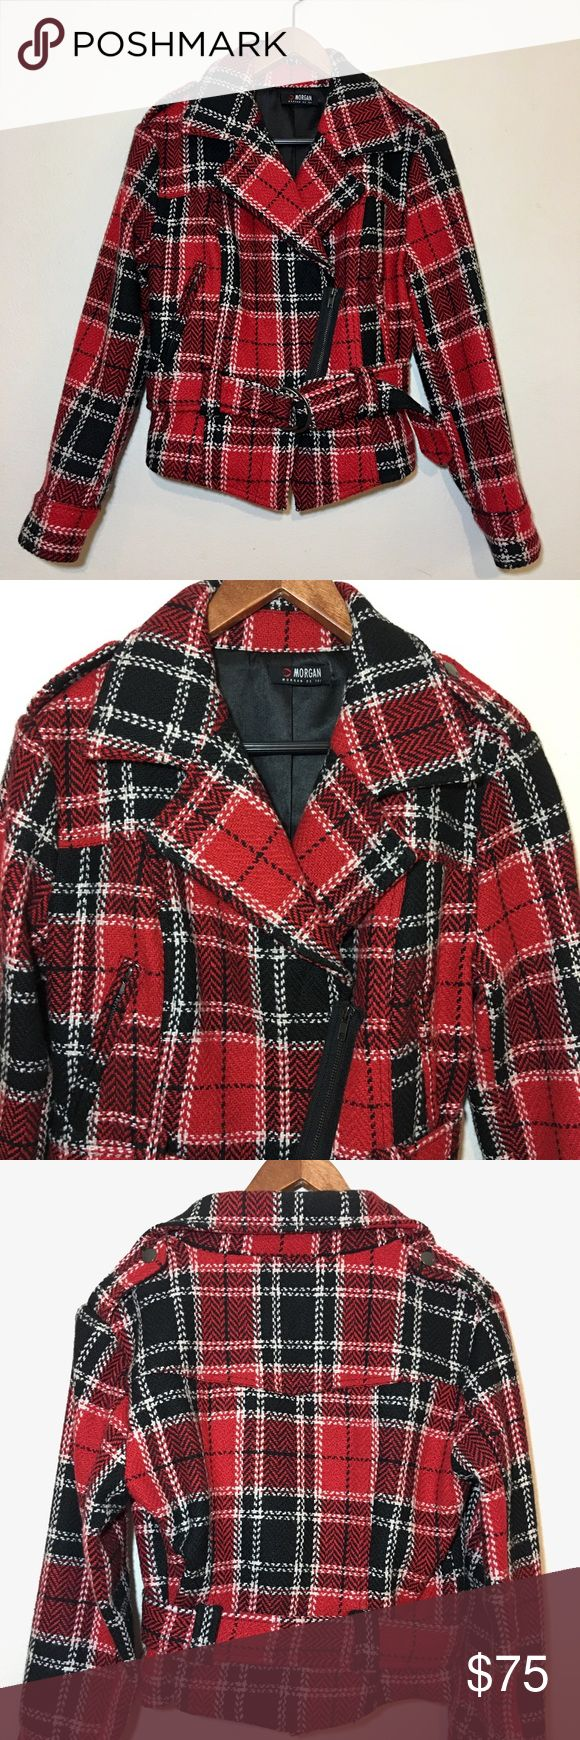 Morgan De Toi Plaid Jacket ONE OF A KIND!!! Morgan De Toi Plaid Biker / Moto Style Jacket. Thick wool blend material. Diagonal zip front closure with 2 zip pockets. Fully lined with inner button pocket. Size 10. This jacket is in pristine condition! Morgan De Toi Jackets & Coats